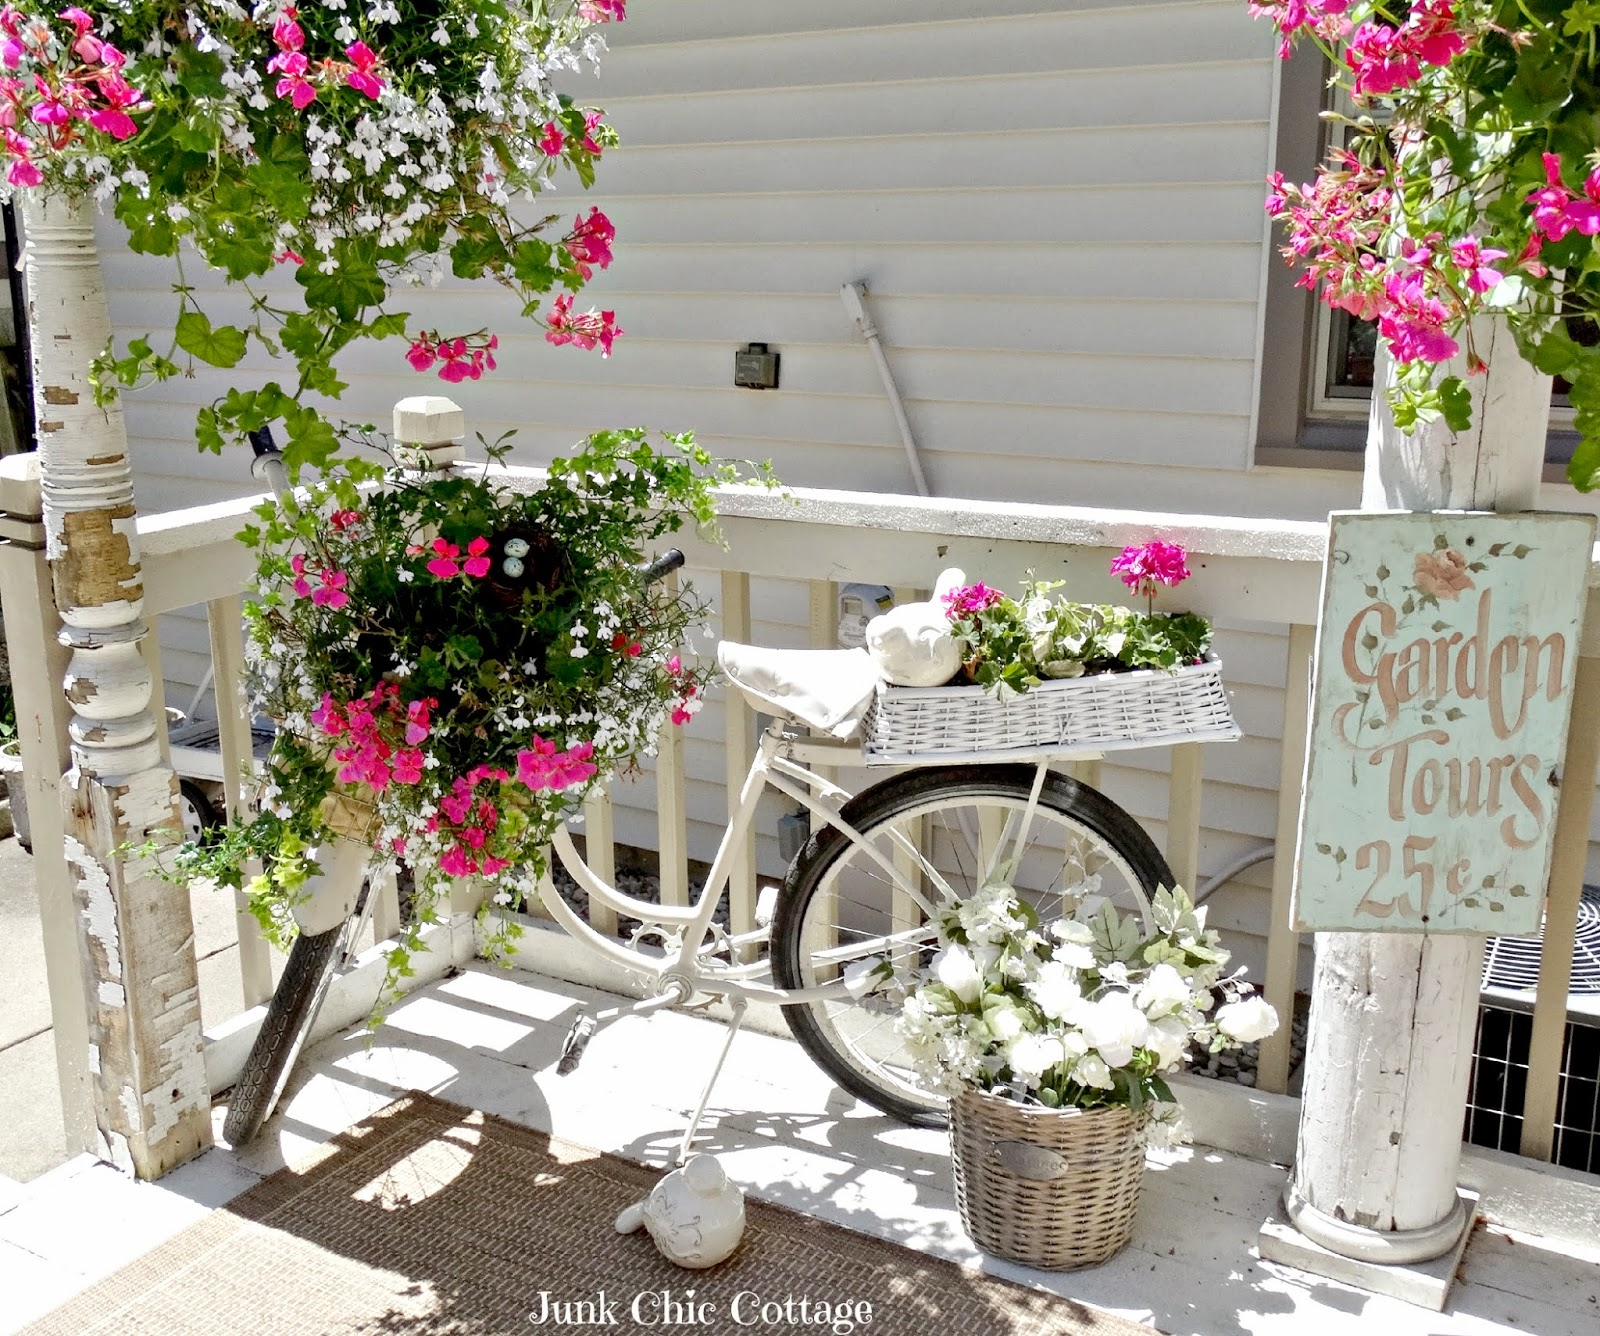 Junk chic cottage deck sanctuary for Decoration jardin printemps